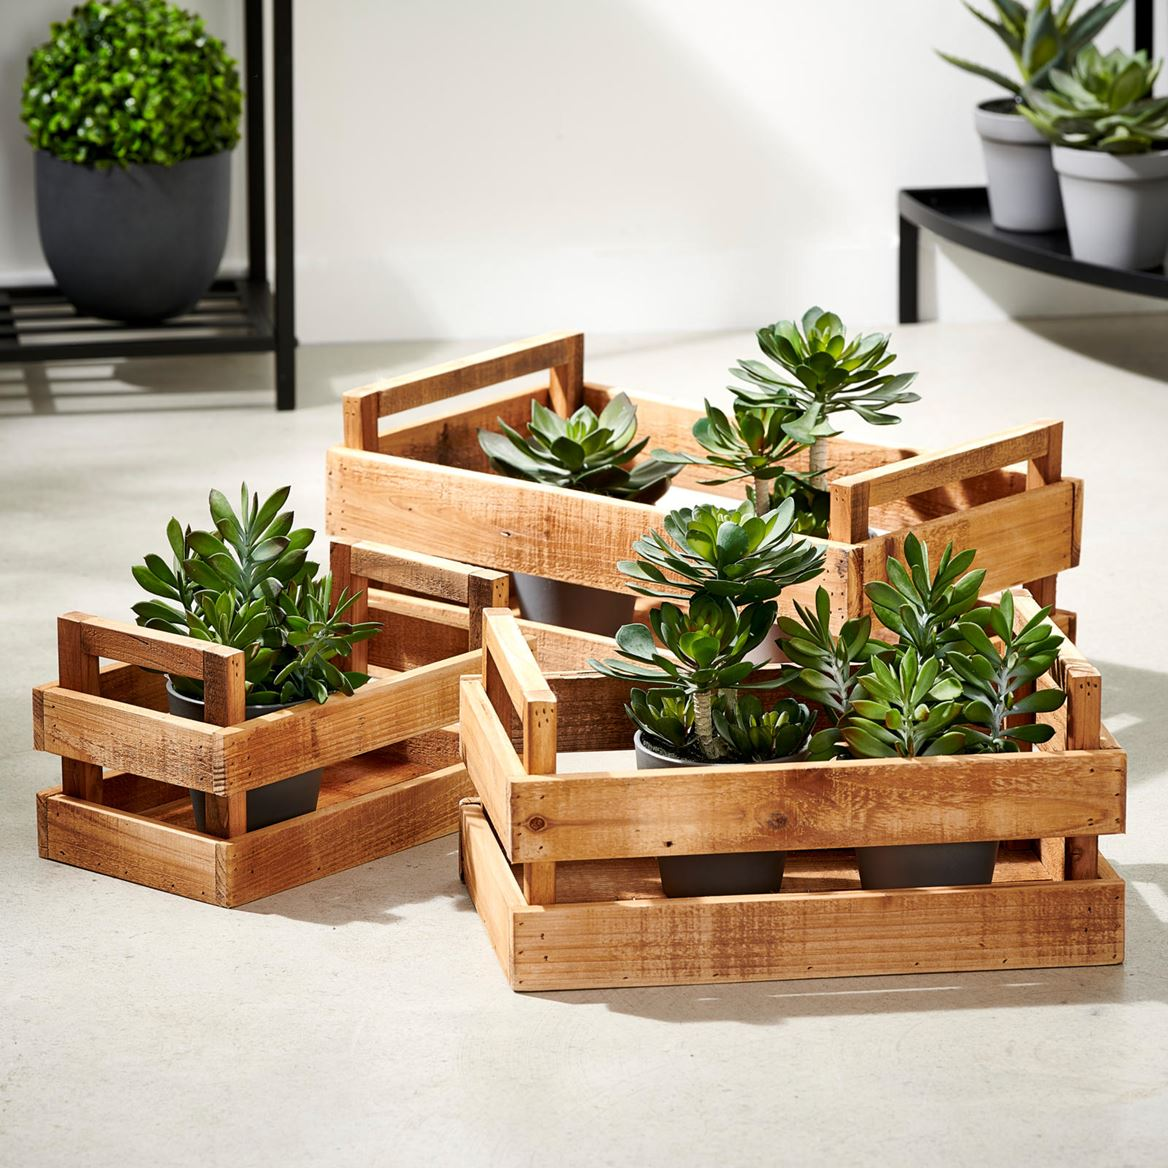 RECYCLE Cassetta naturale H 13 x W 37 x D 23 cm_recycle-cassetta-naturale-h-13-x-w-37-x-d-23-cm